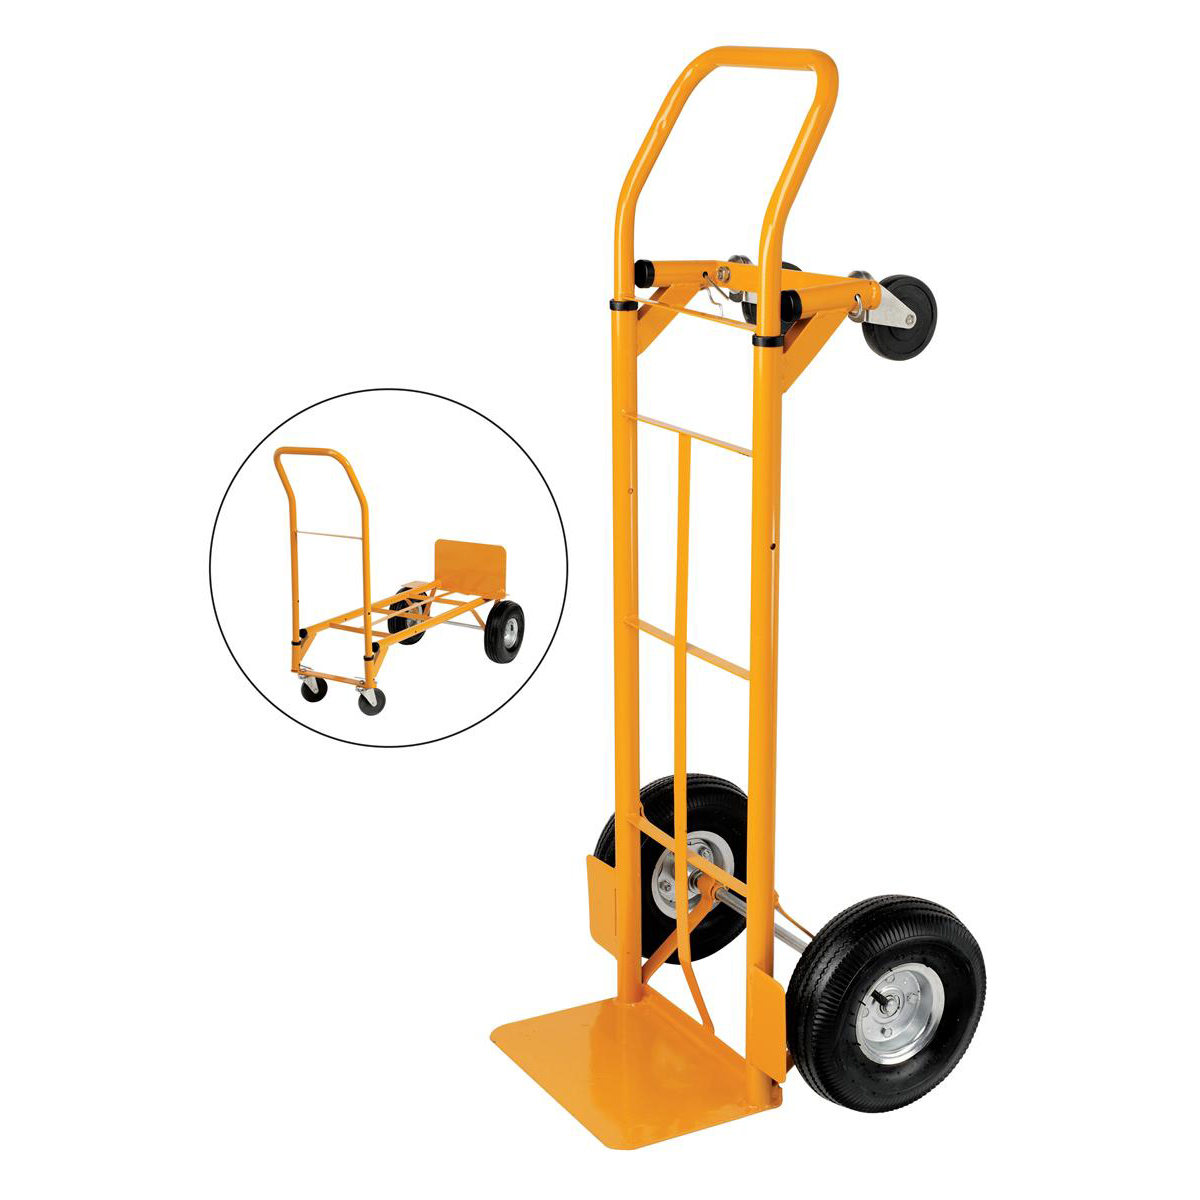 Platform truck 5 Star Facilities Universal Hand Trolley and Platform Truck Capacity 250kg Foot Size W550xL460mm Yellow